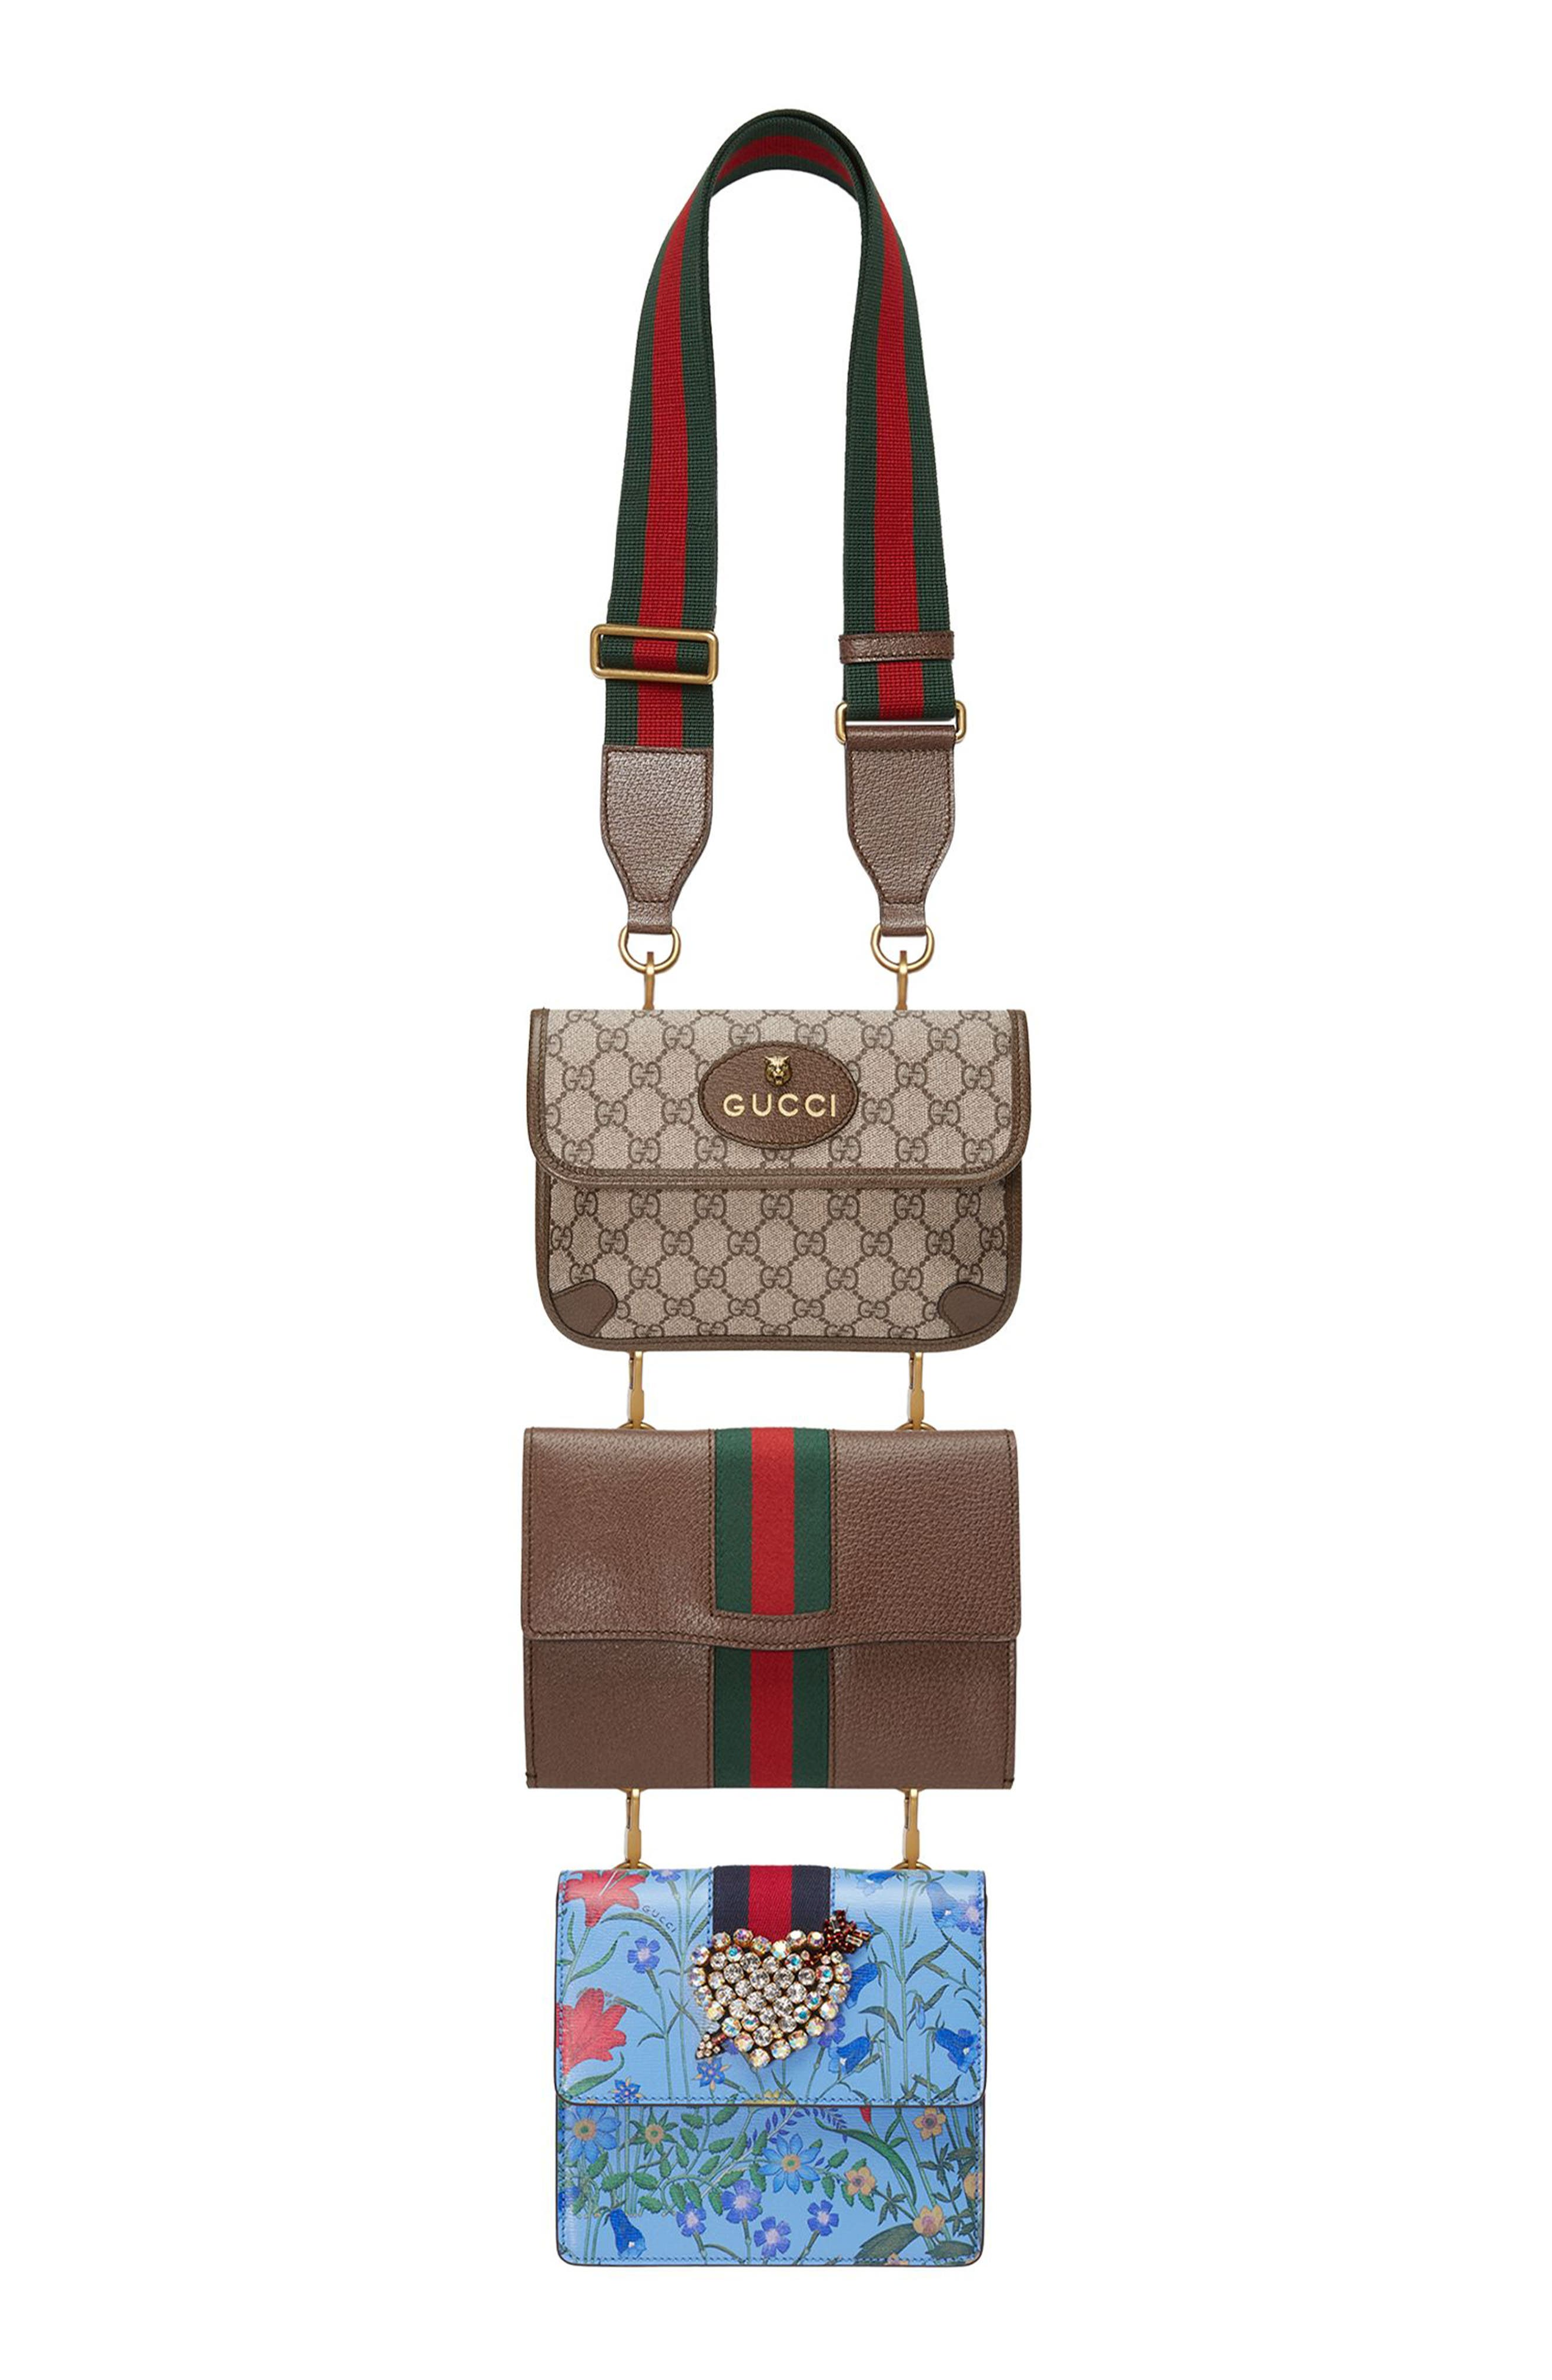 Totem Four-in-One Leather & Canvas Shoulder Bag,                             Alternate thumbnail 3, color,                             BROWN/ RED/ BLUE